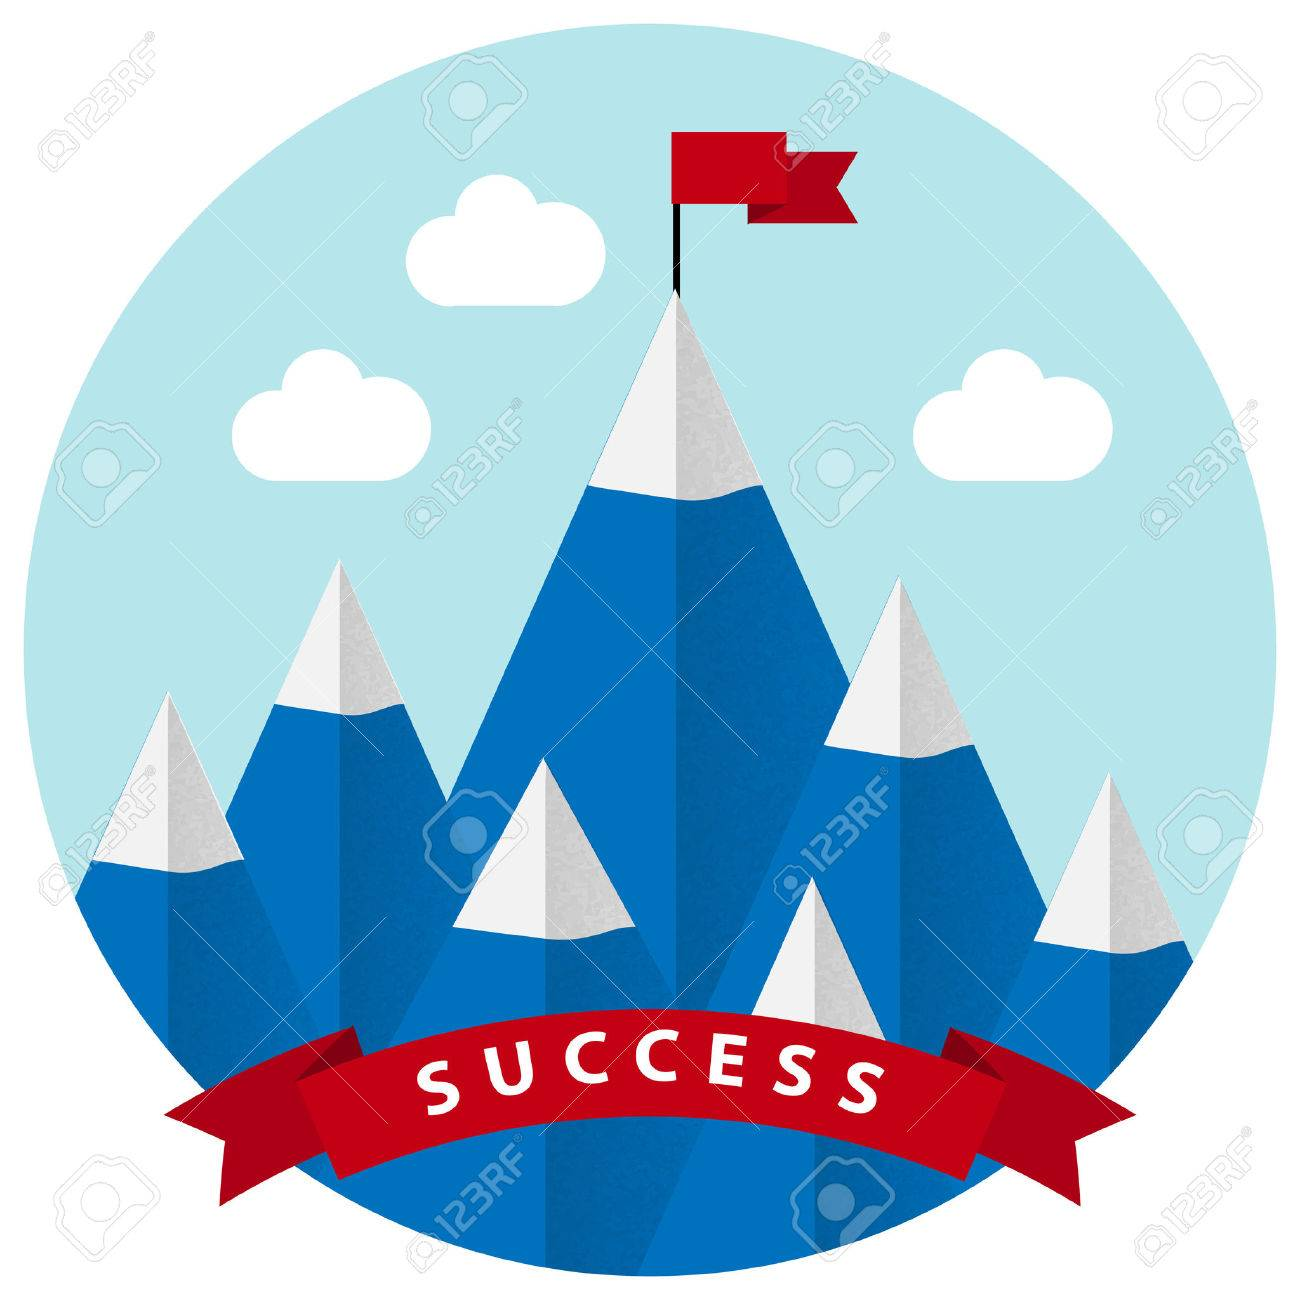 Flat design vector illustration of success and victory. High mountain, ribbon, clouds, red flag on the mountain peak, winning strategy. Achieving the goal, winning strategy with focus on results. - 35764343